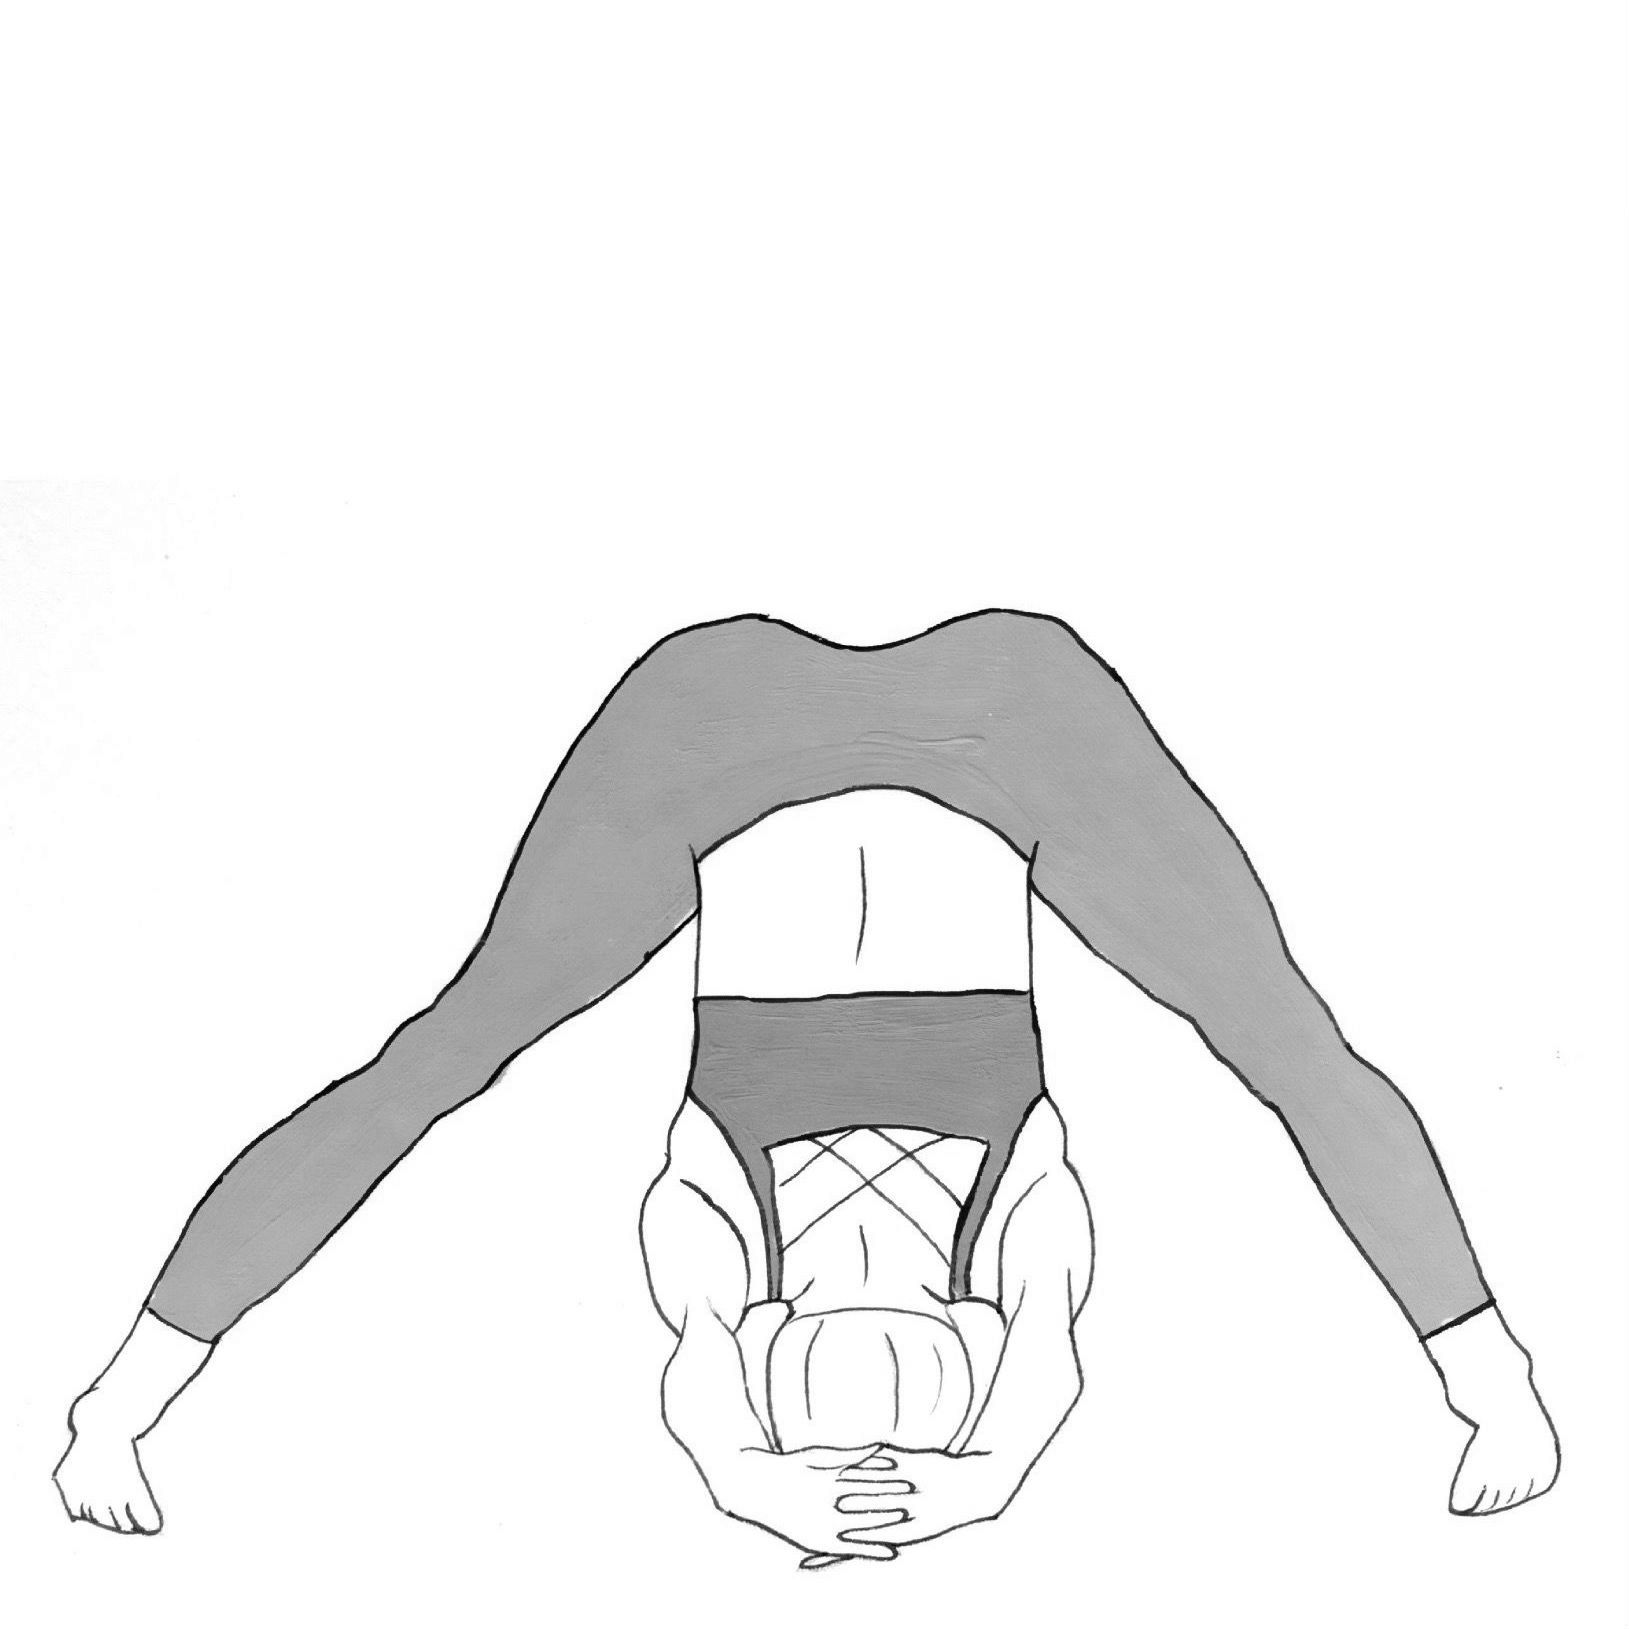 Wide-legged Forward Bend C - Prasarita Padottanasana C